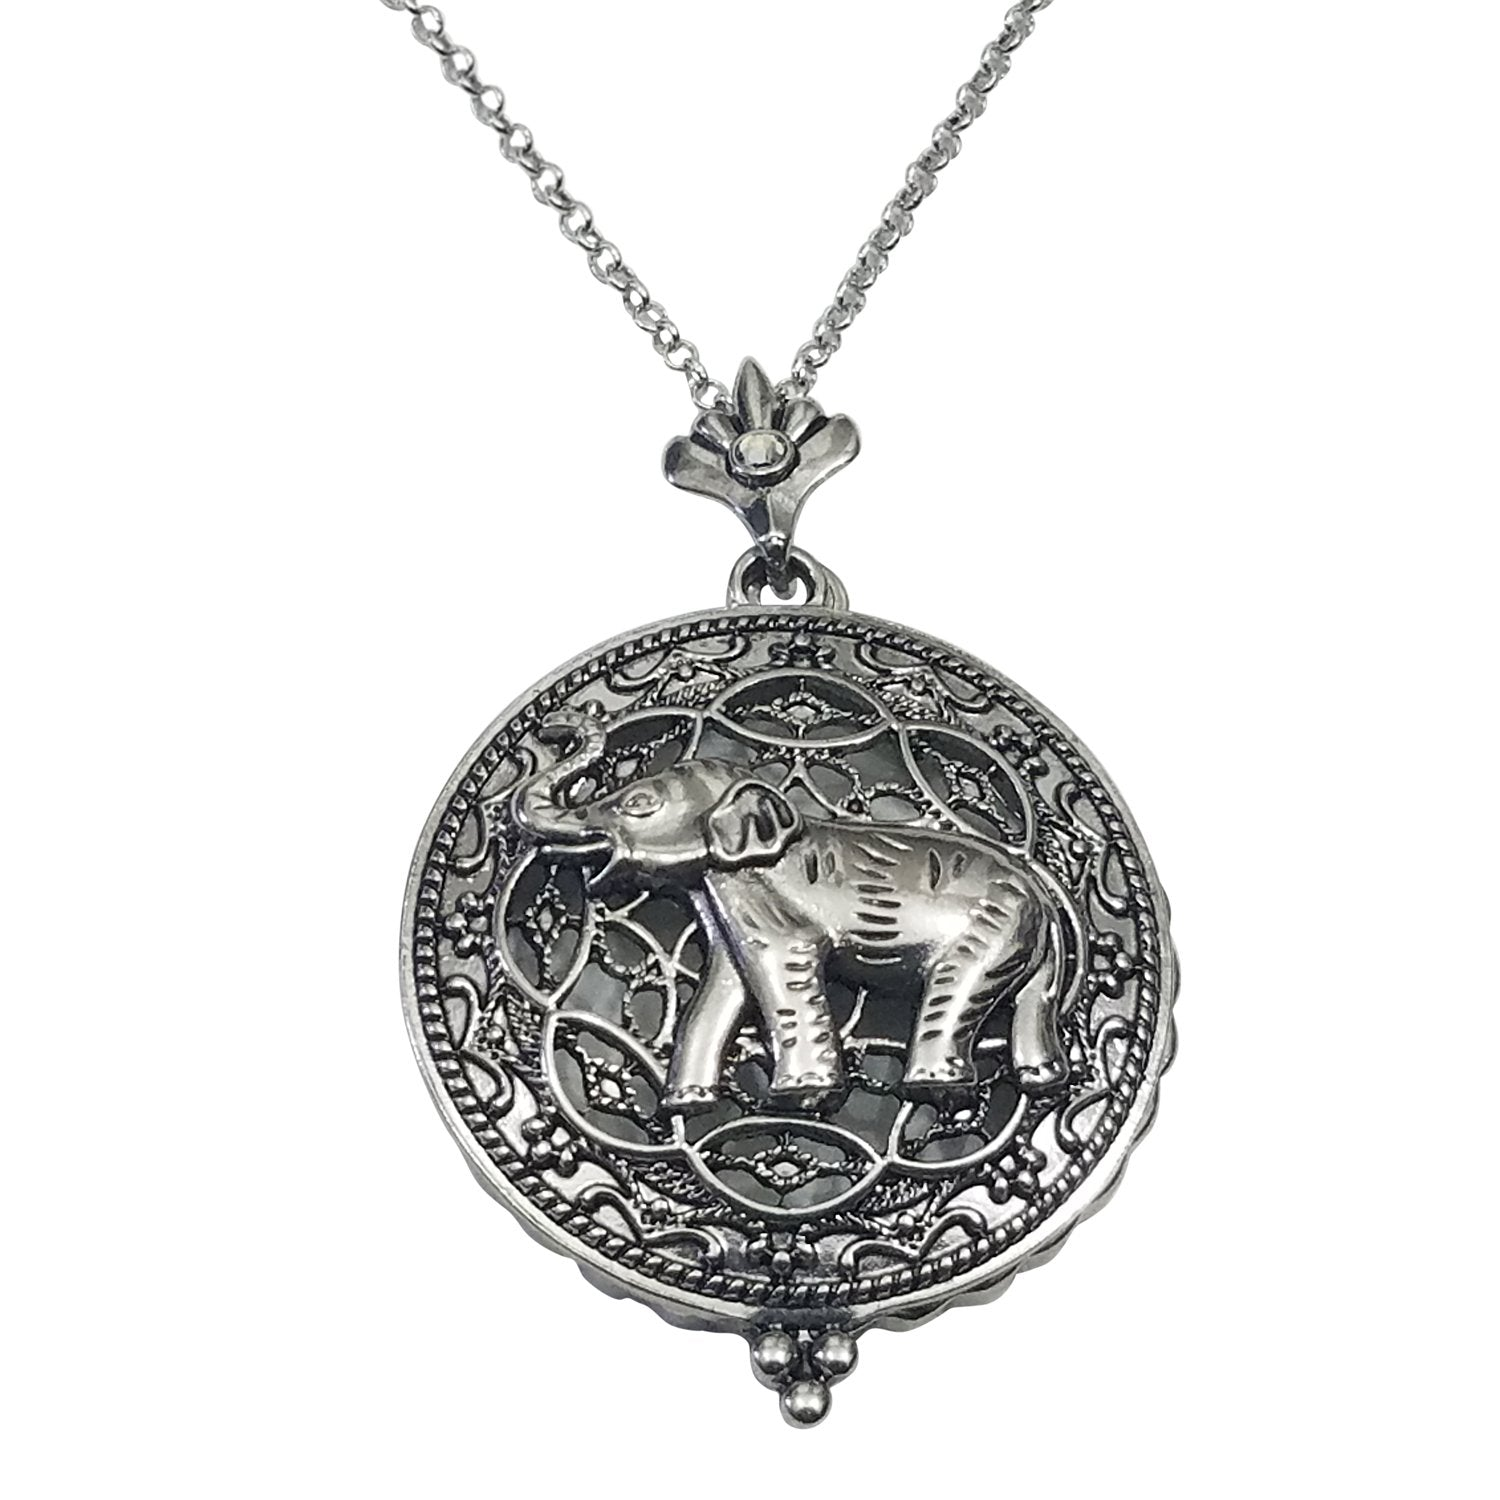 Silver Toned Elephant Magnifying Glass Pendant with Long Necklace